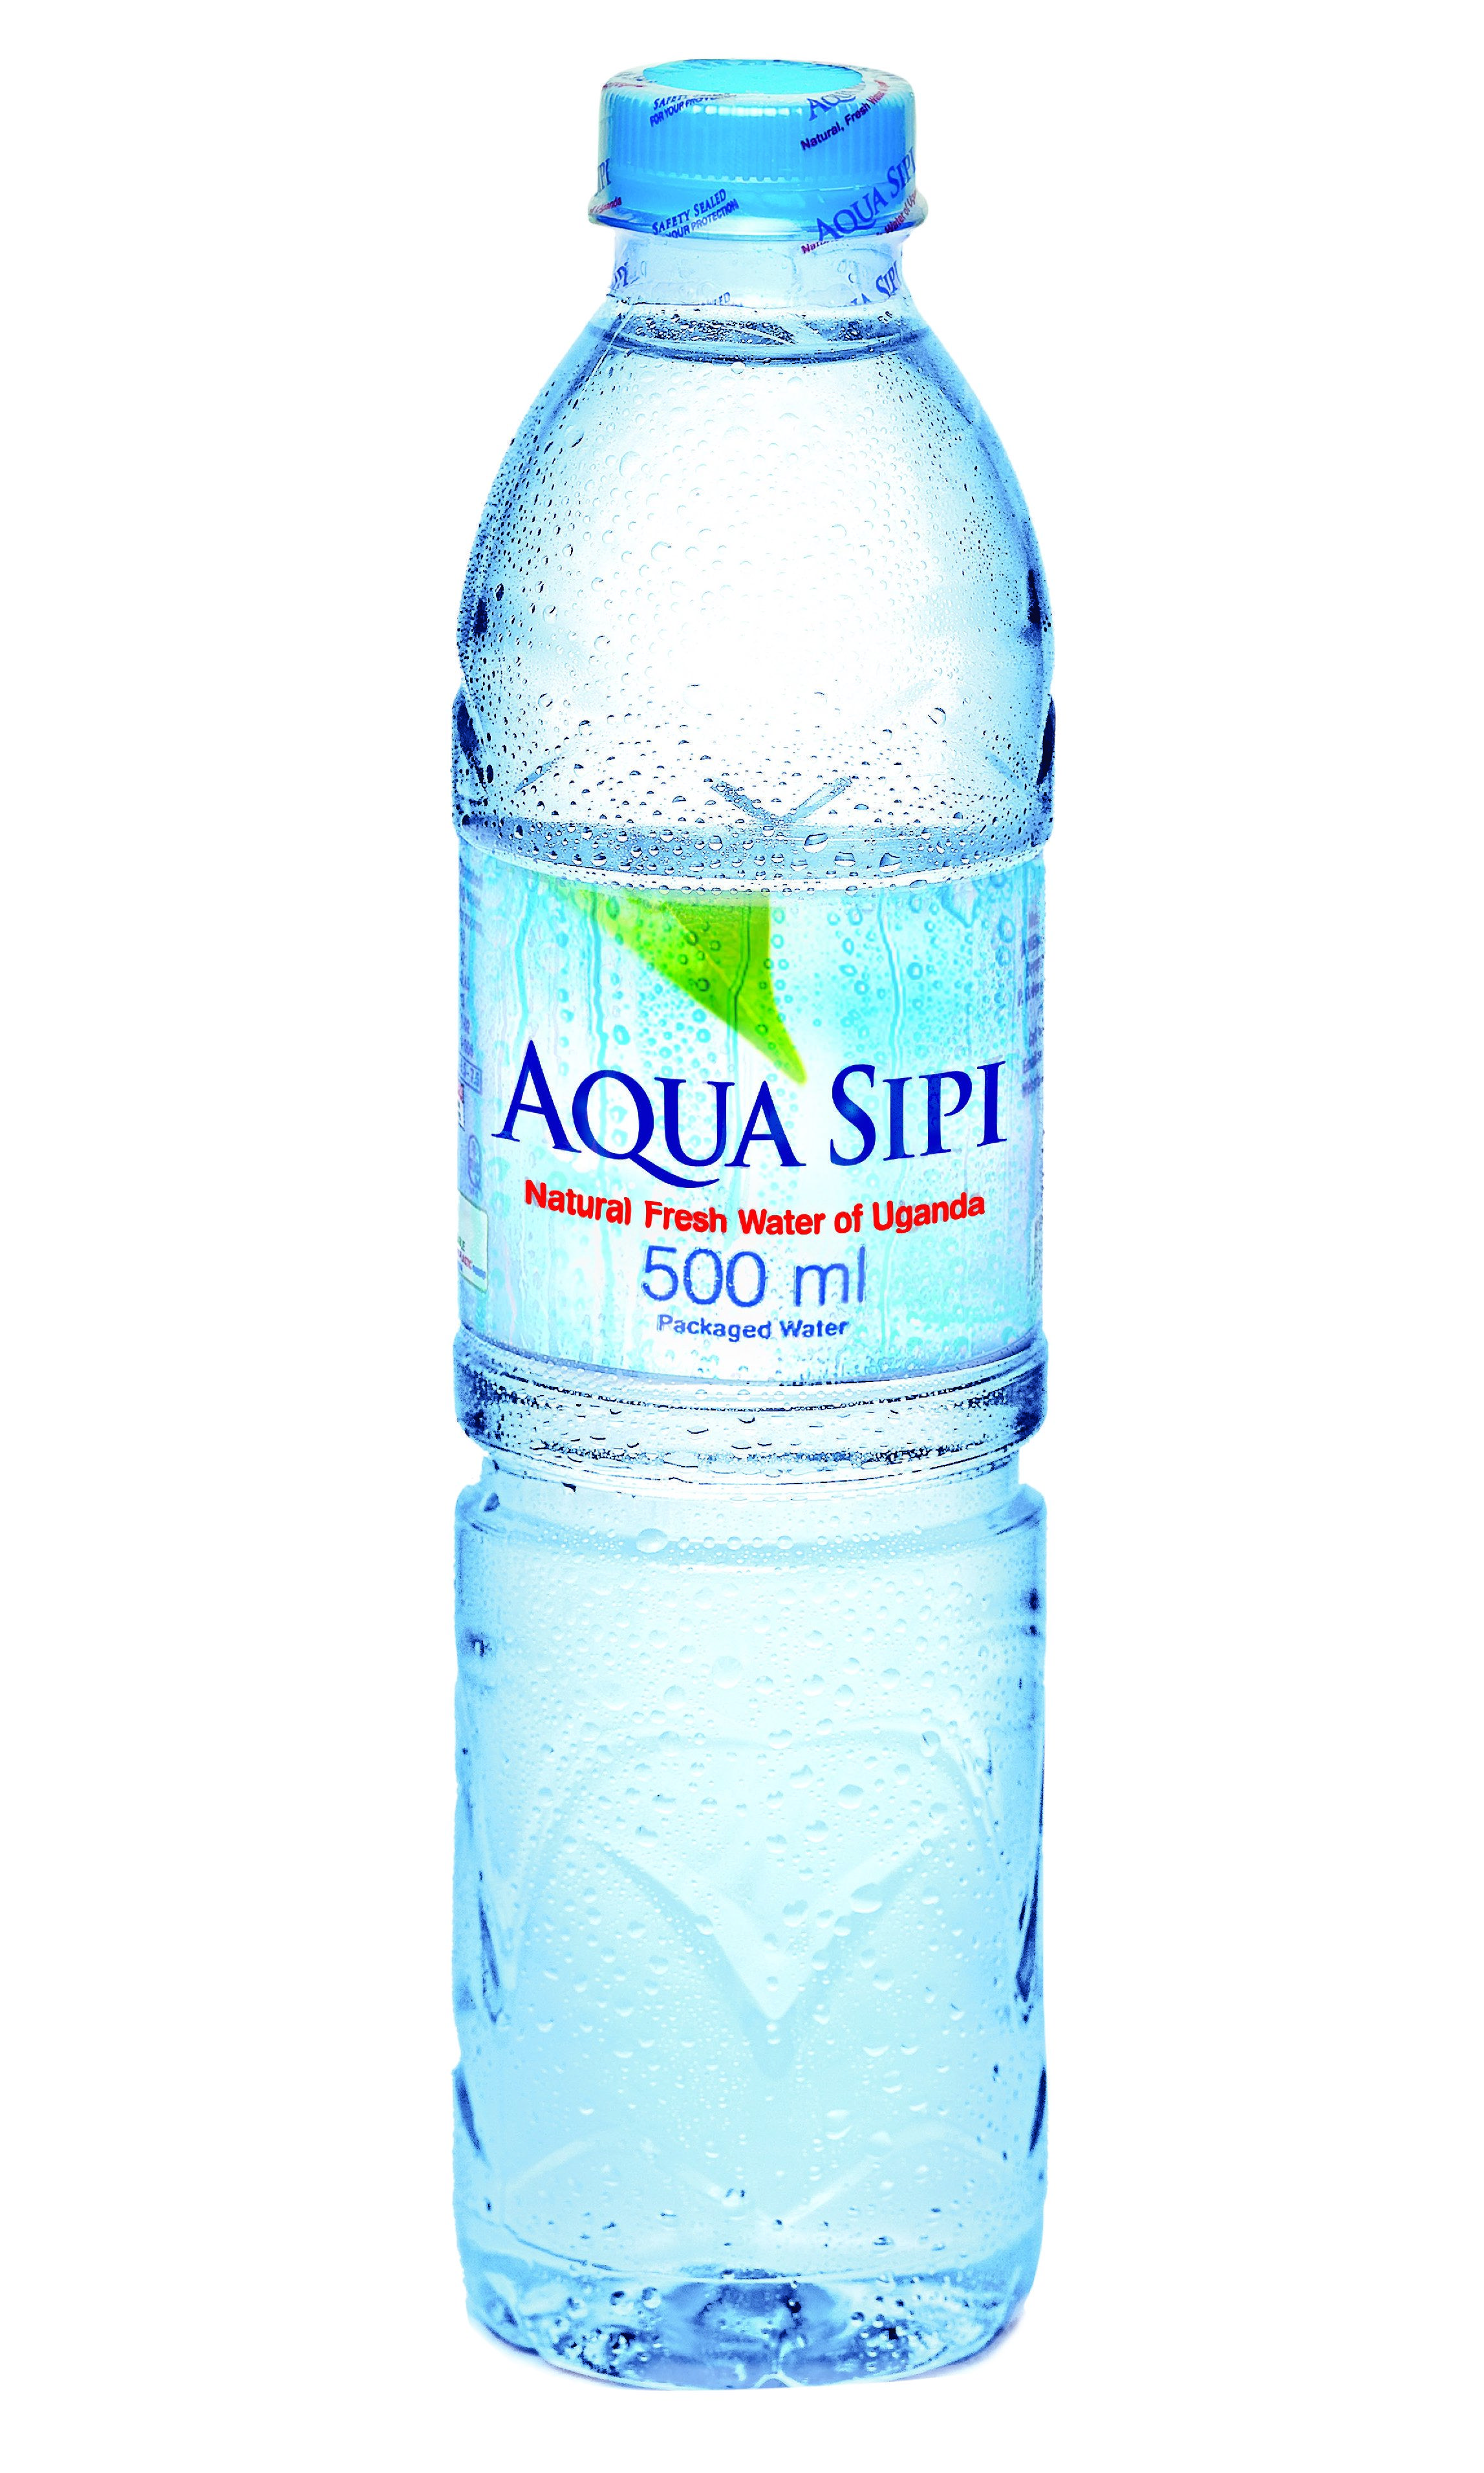 Aqua sipi mineral water from mukwano group the water for aqua sipi mineral water from mukwano group the water for champions kip sipping and sciox Gallery